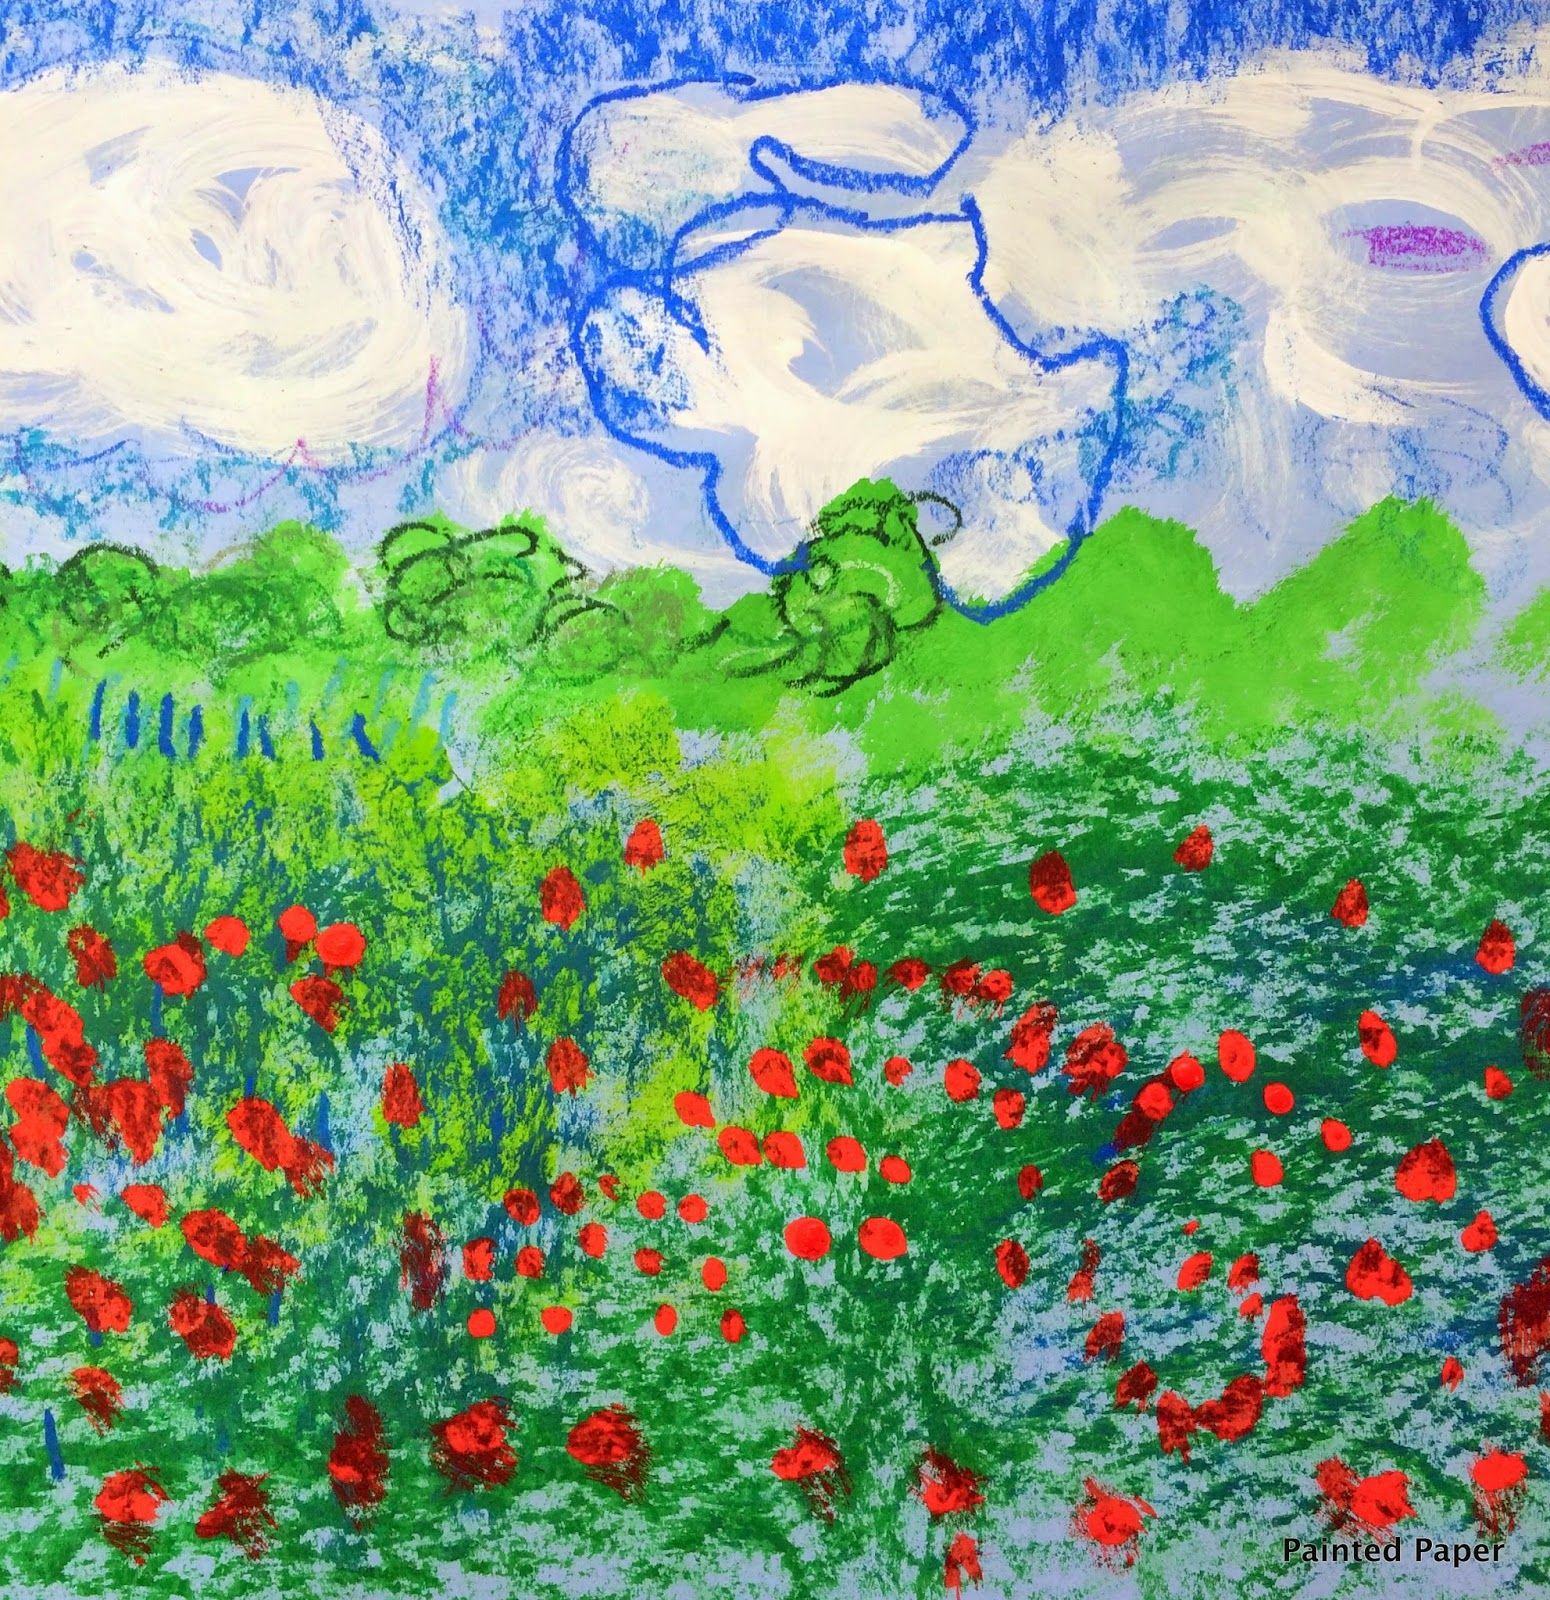 PAINTED PAPER Monets Fields Of Poppies Art Class Famous - Artist plants 12 acre field to create a giant artwork inspired by van gogh